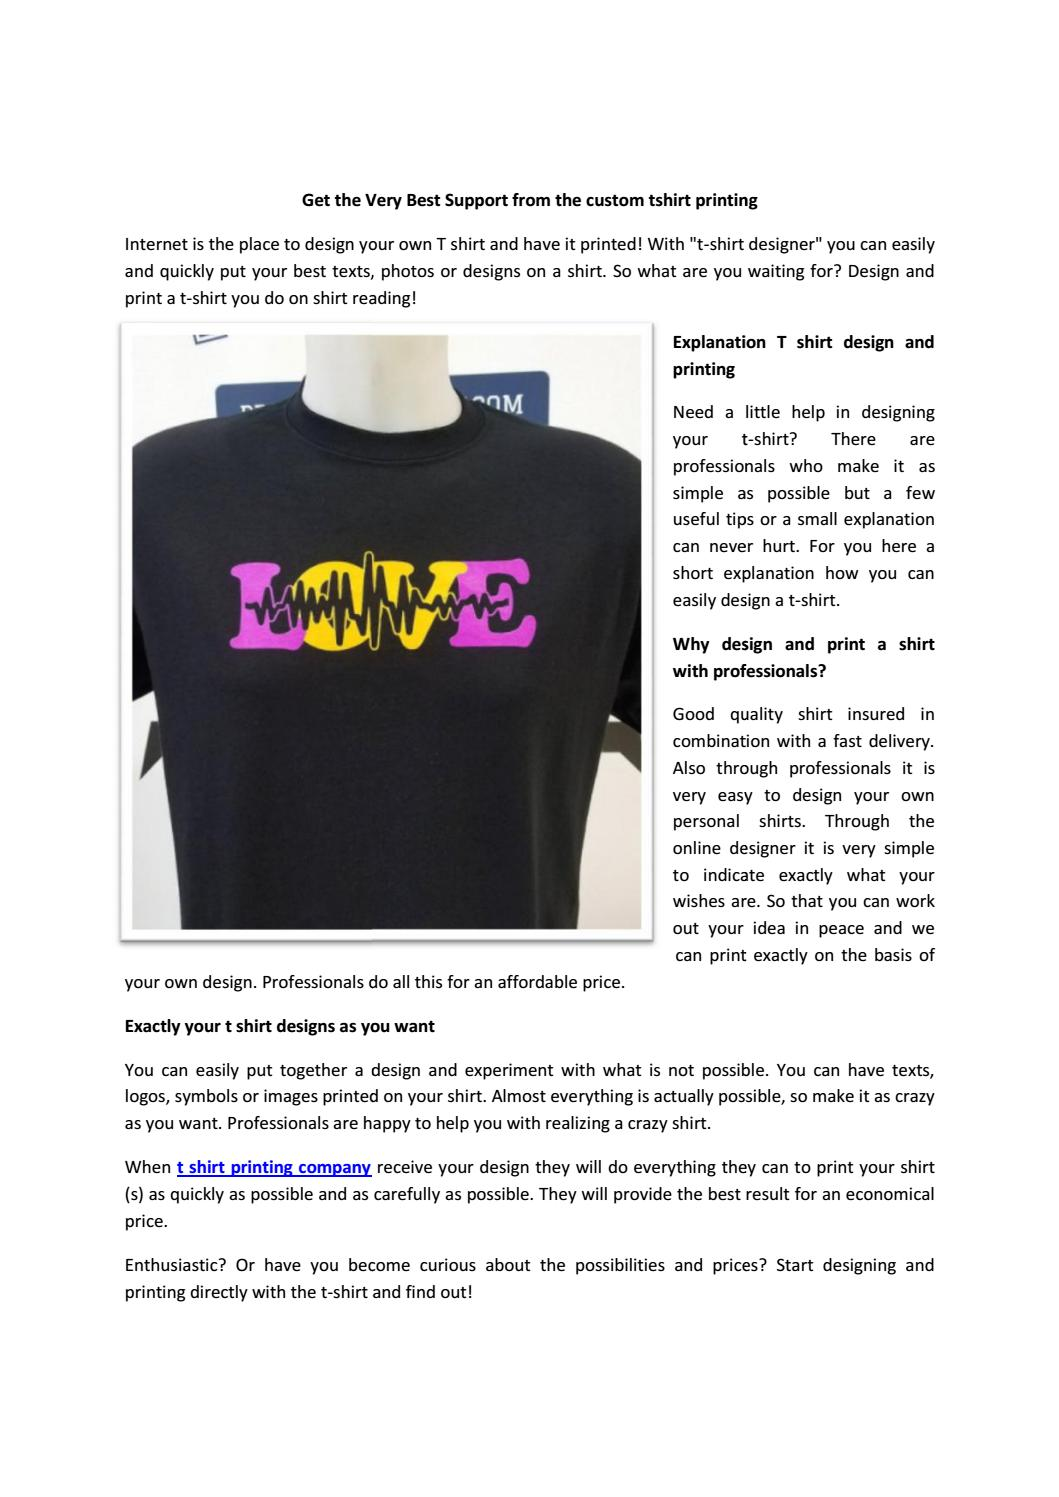 fbe7ece3 Get the very best support from the custom tshirt printing by T-Shirt  Printing Company - issuu